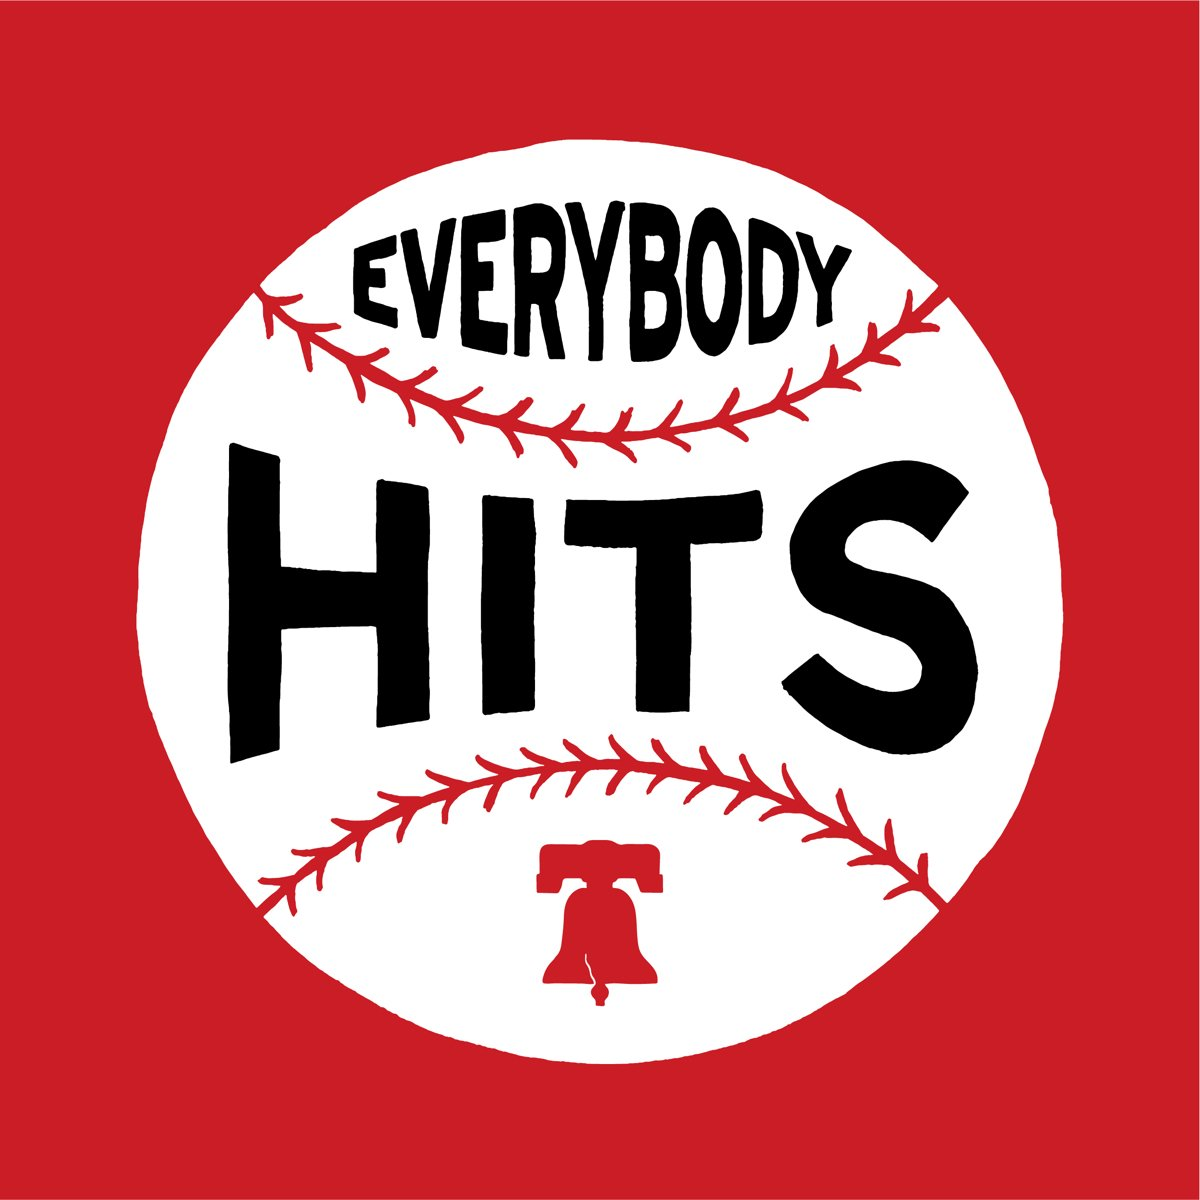 🎙 NOW AIRING: EVERYBODY HITS  Since the Phillies are never boring, we've got a podcast that will keep you up to speed. Hosted by @MattGelb and @Bo_Wulf, with @M_Montemurro joining in along the way.  Get 40% off 👉 http://theathletic.com/podcasts40   LISTEN: http://theathletic.com/podcast/40-everybody-hits/…